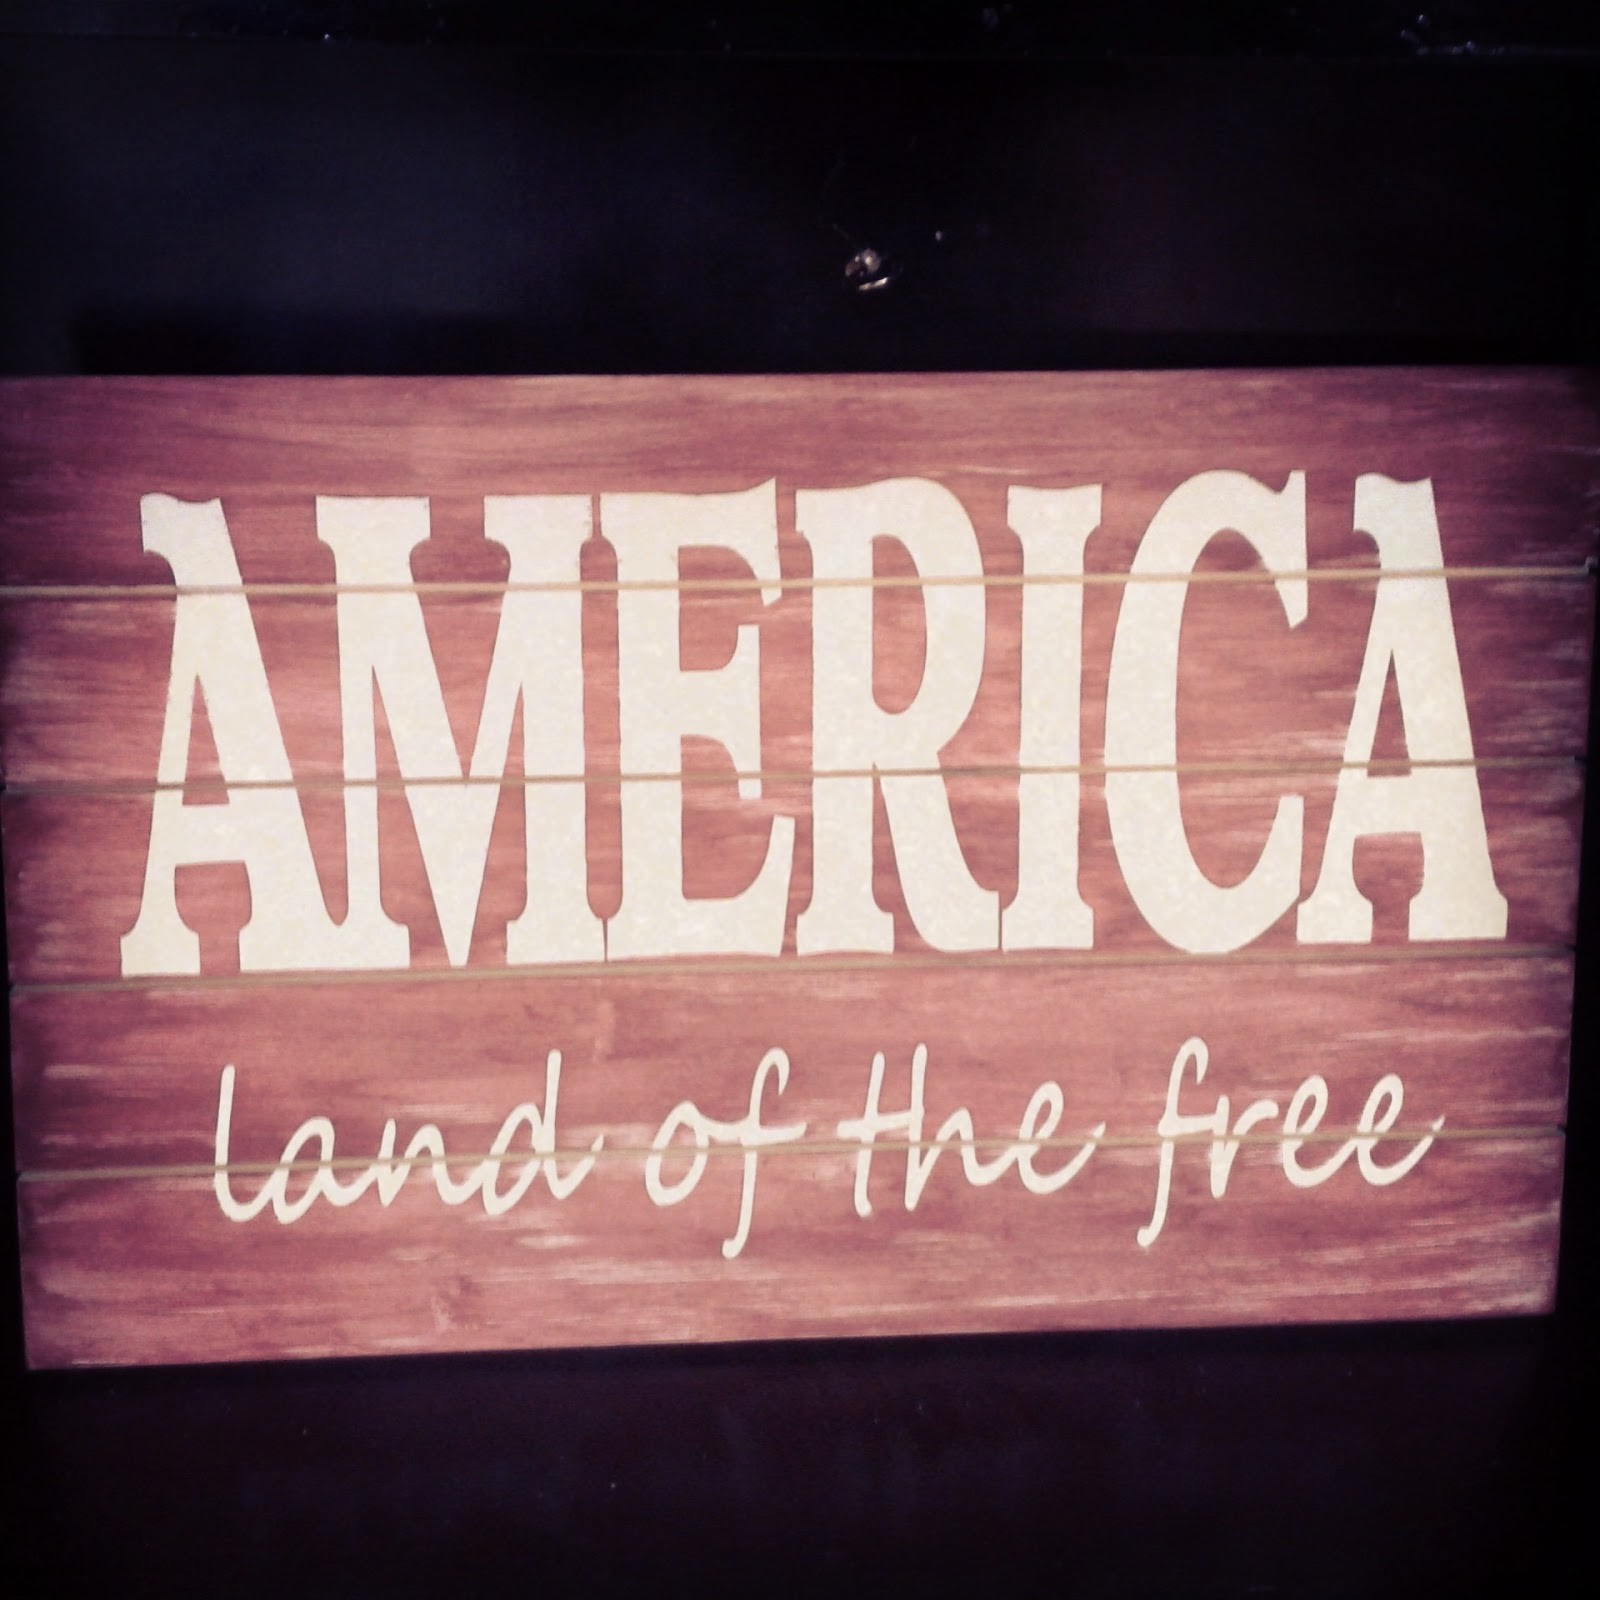 FREE LAND GIVEAWAY IN USA